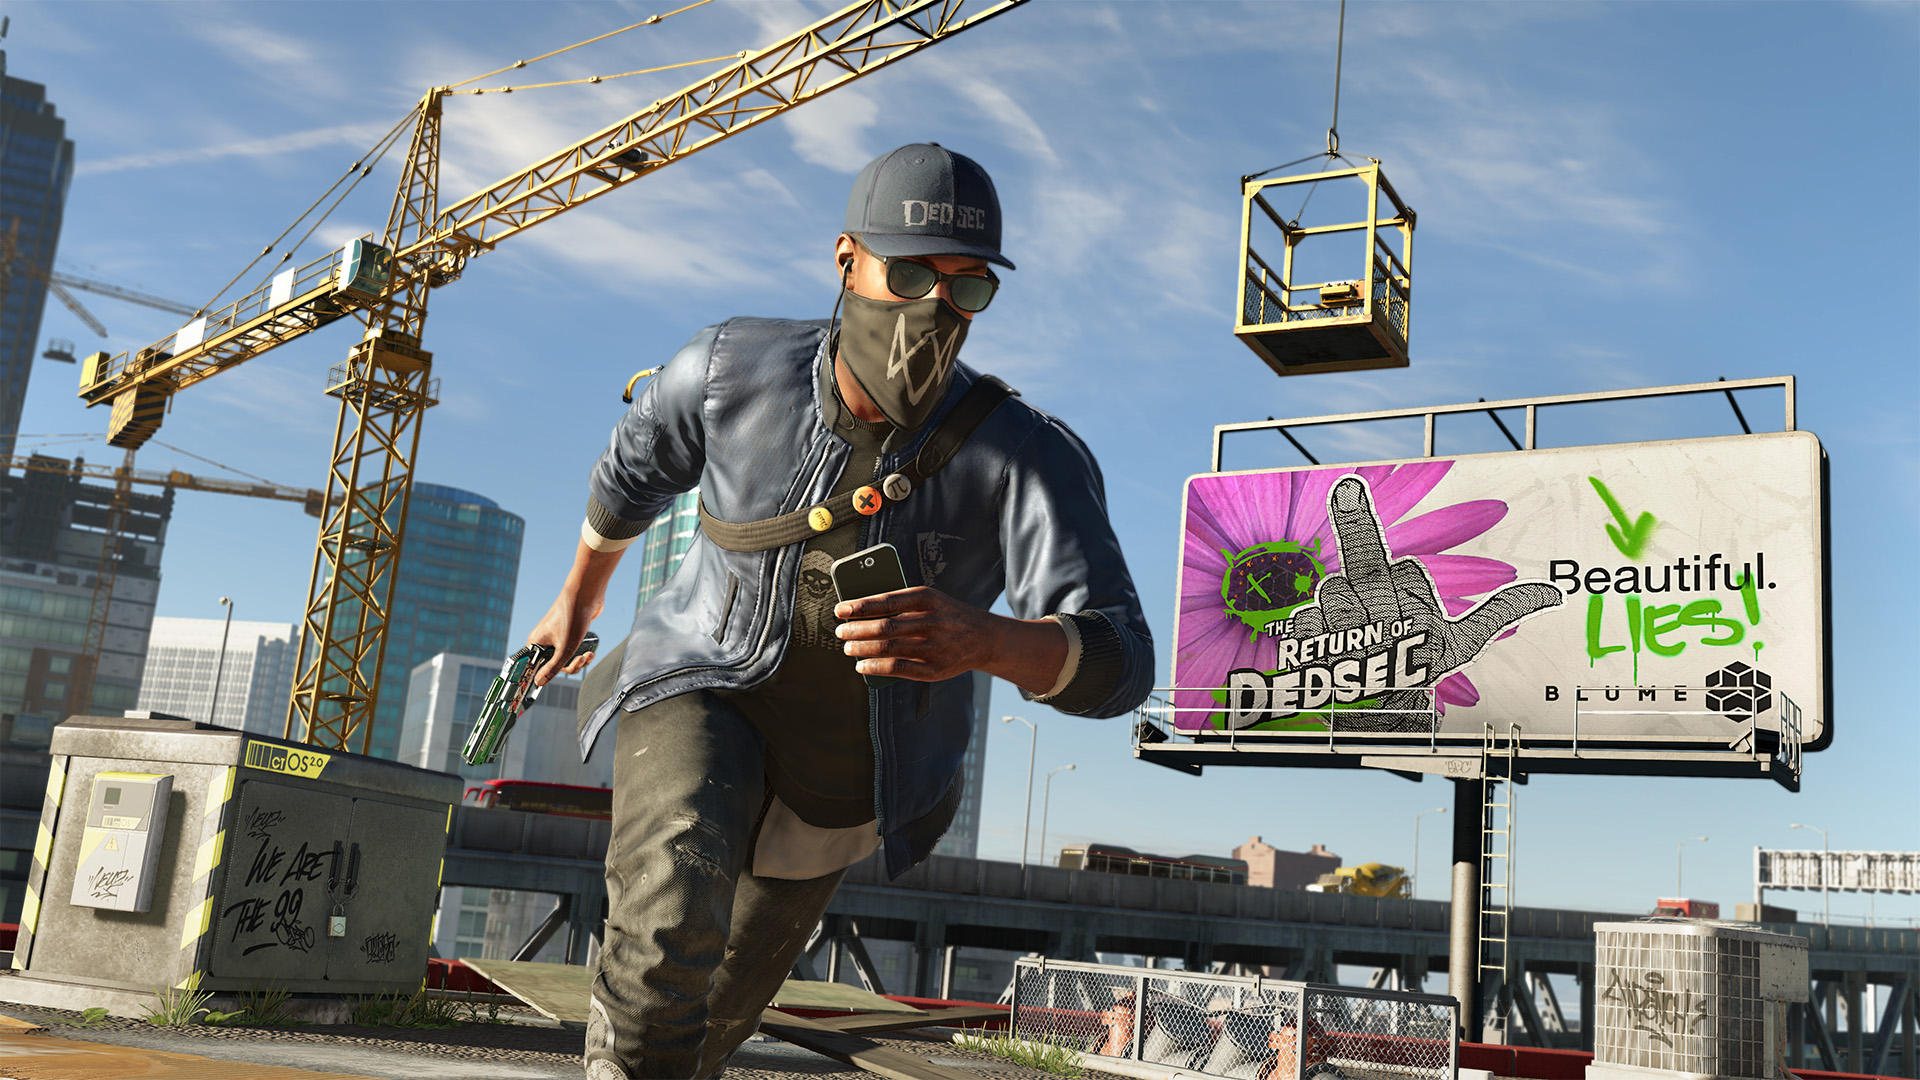 Watch Dogs 2 is exactly what the original game should have